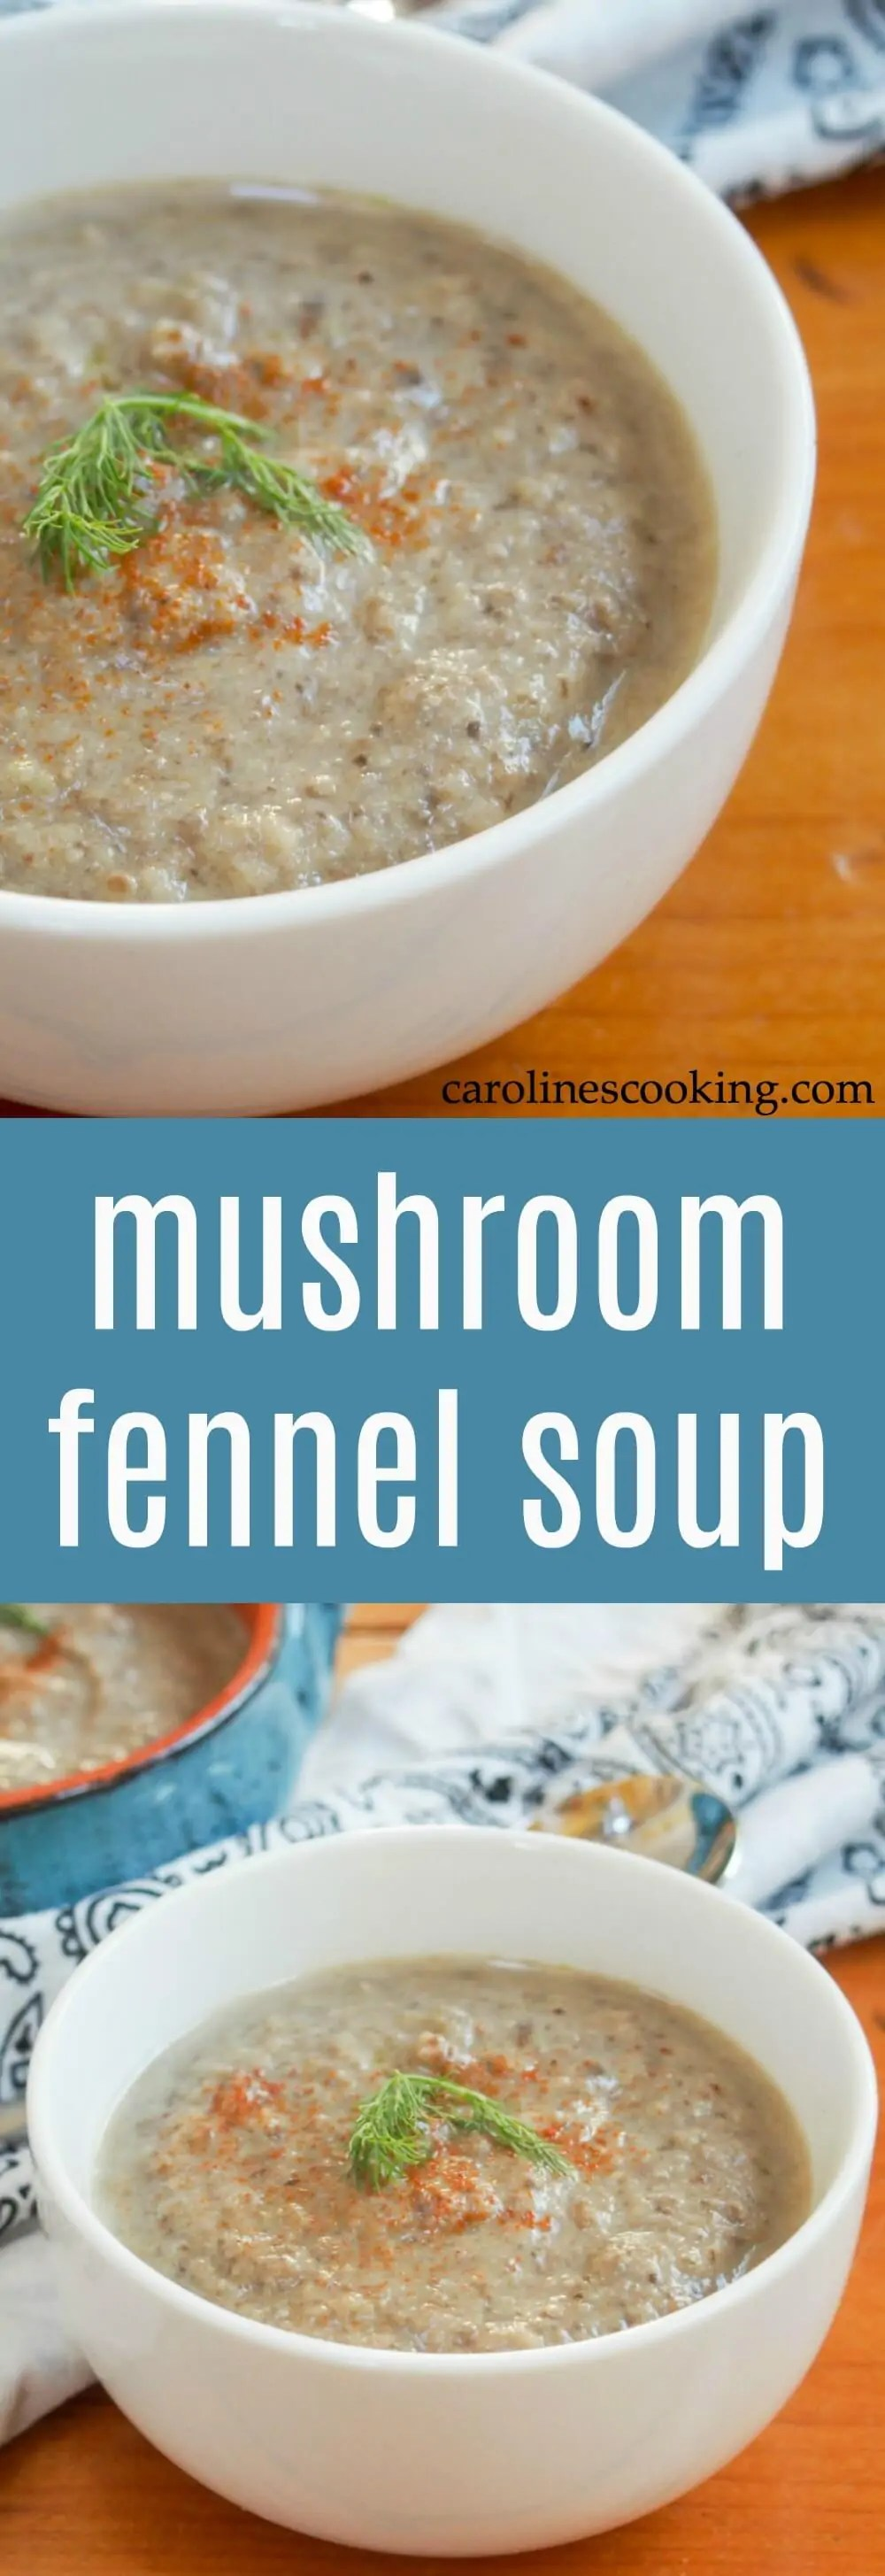 mushroom fennel soup - A cold day needs a warming bowl of soup, and this mushroom fennel soup is easy, comforting and full of great ingredients. Vegan and gluten free